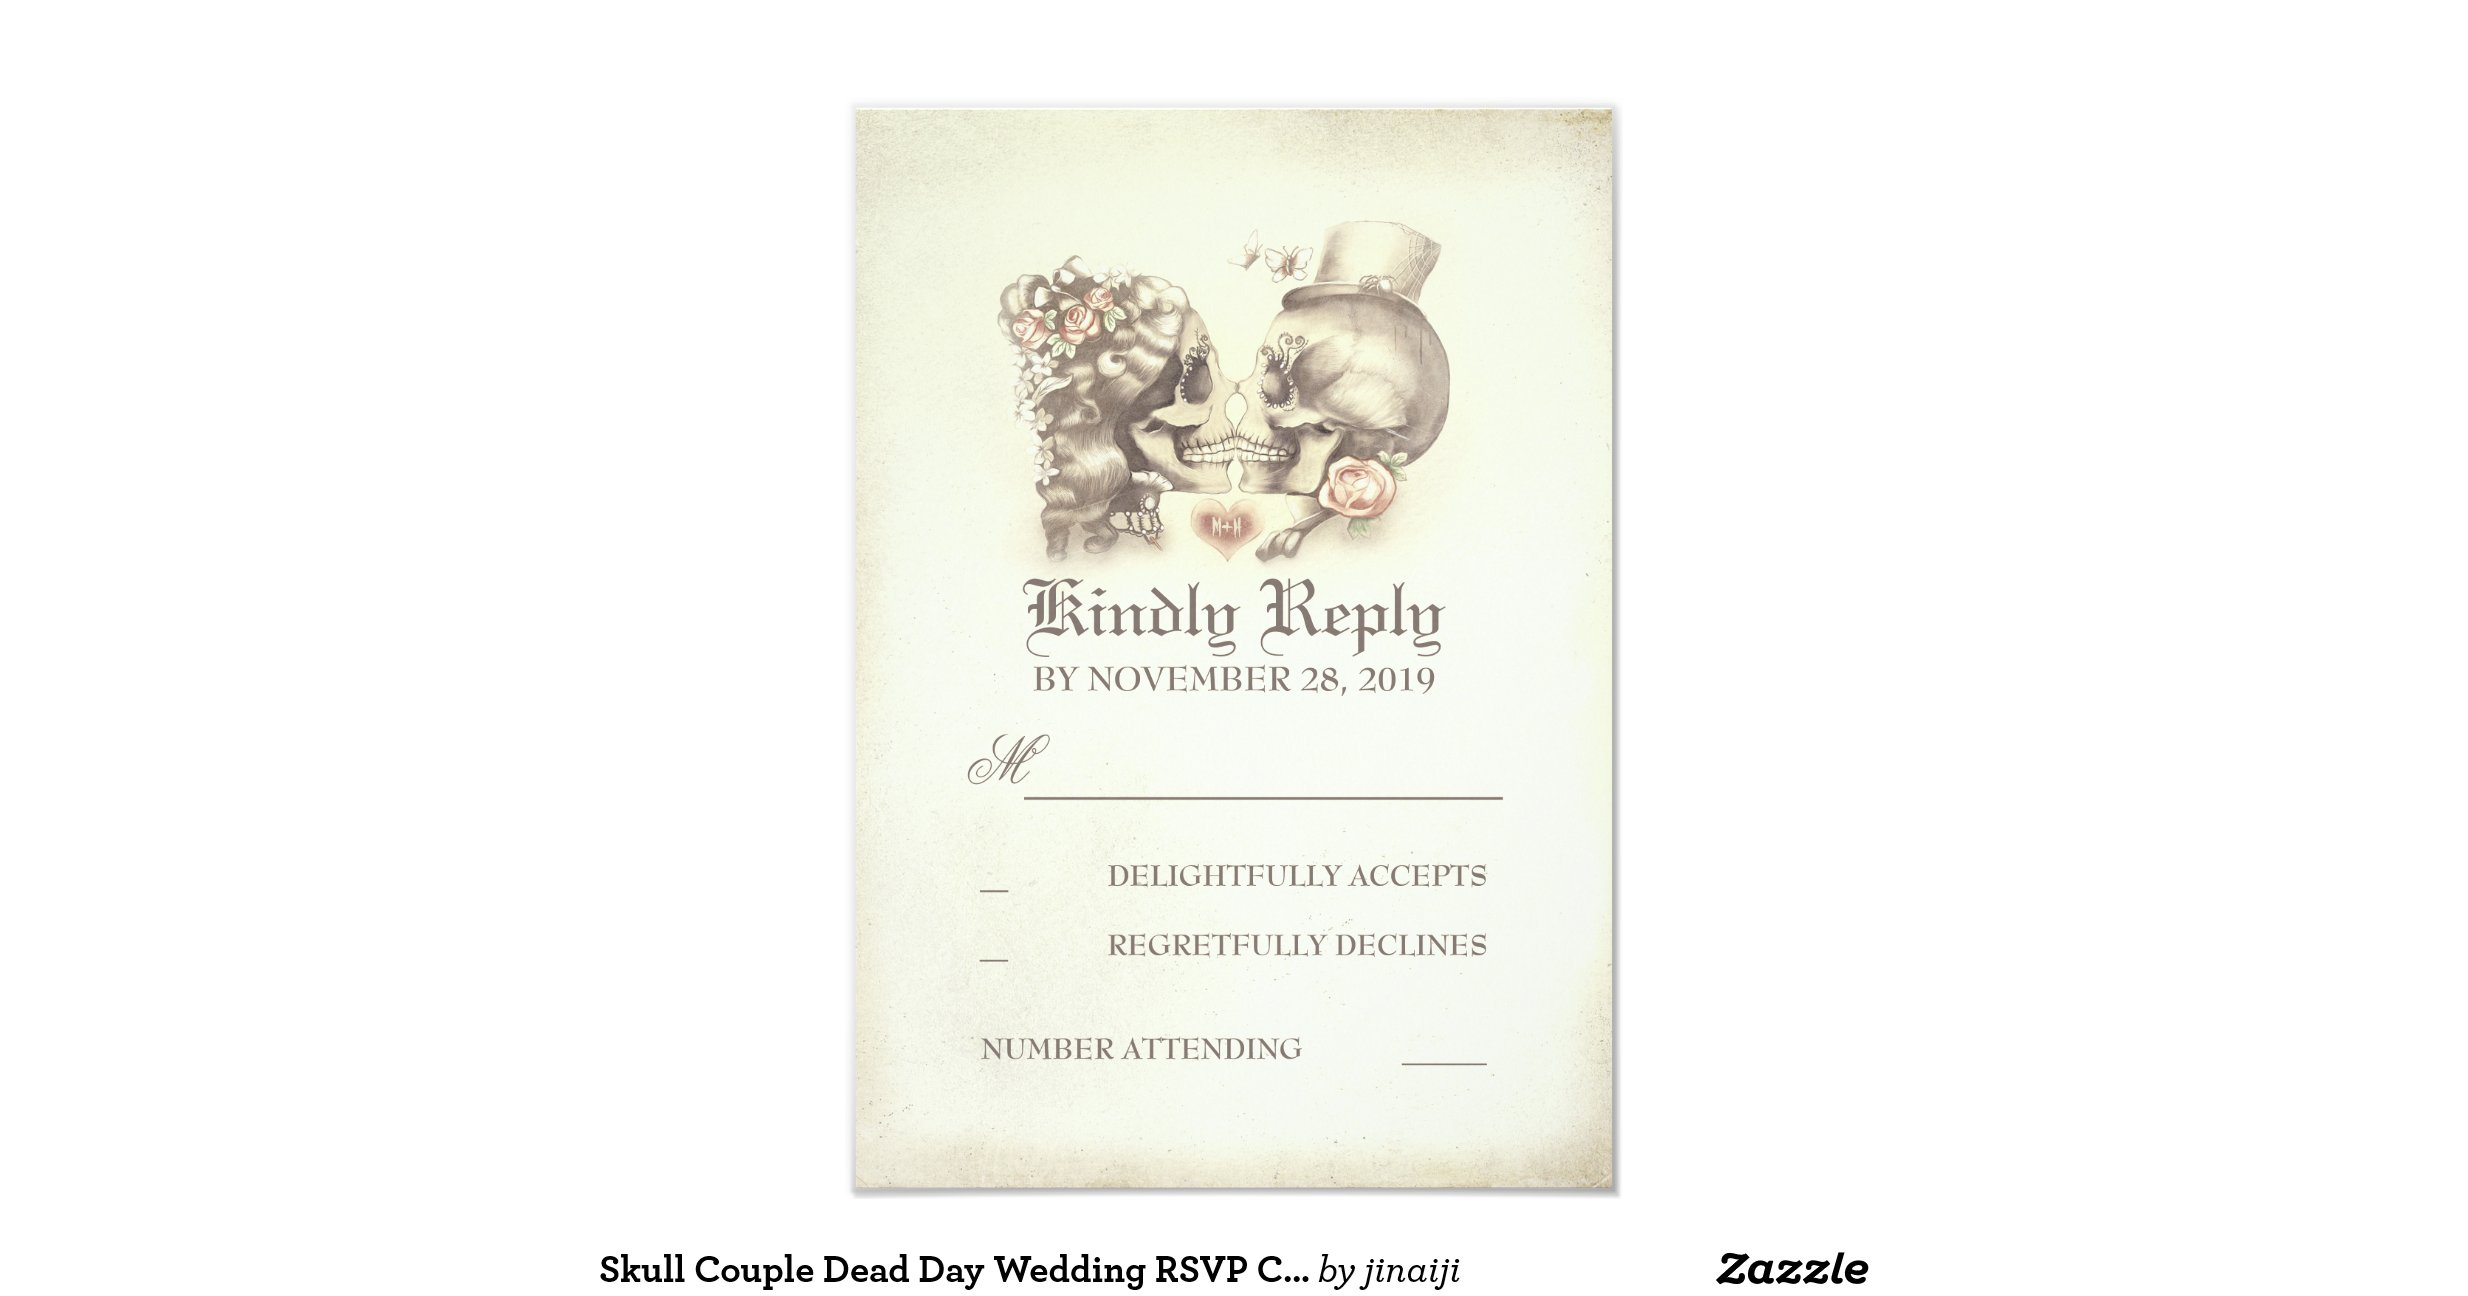 Skull couple dead day wedding rsvp cards 9 cm x 13 cm for Wedding invitations and rsvp cards all in one uk